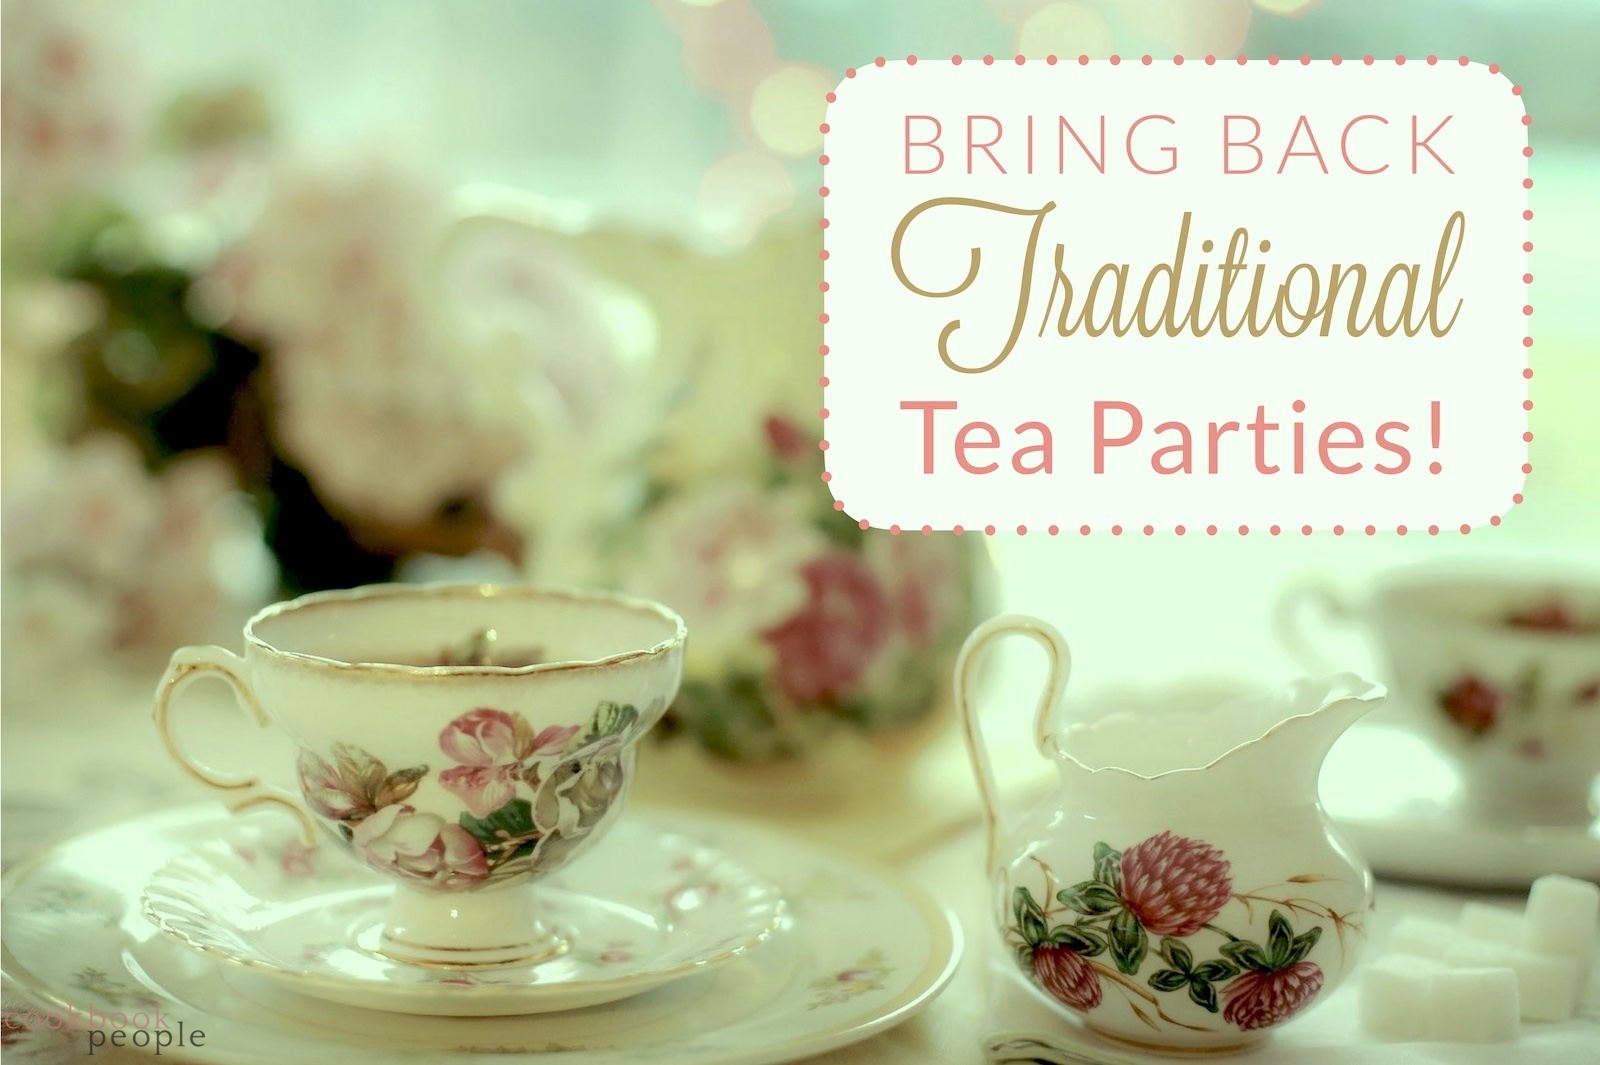 China cup, saucer and jugs with text Bring Back Traditional Tea Parties!